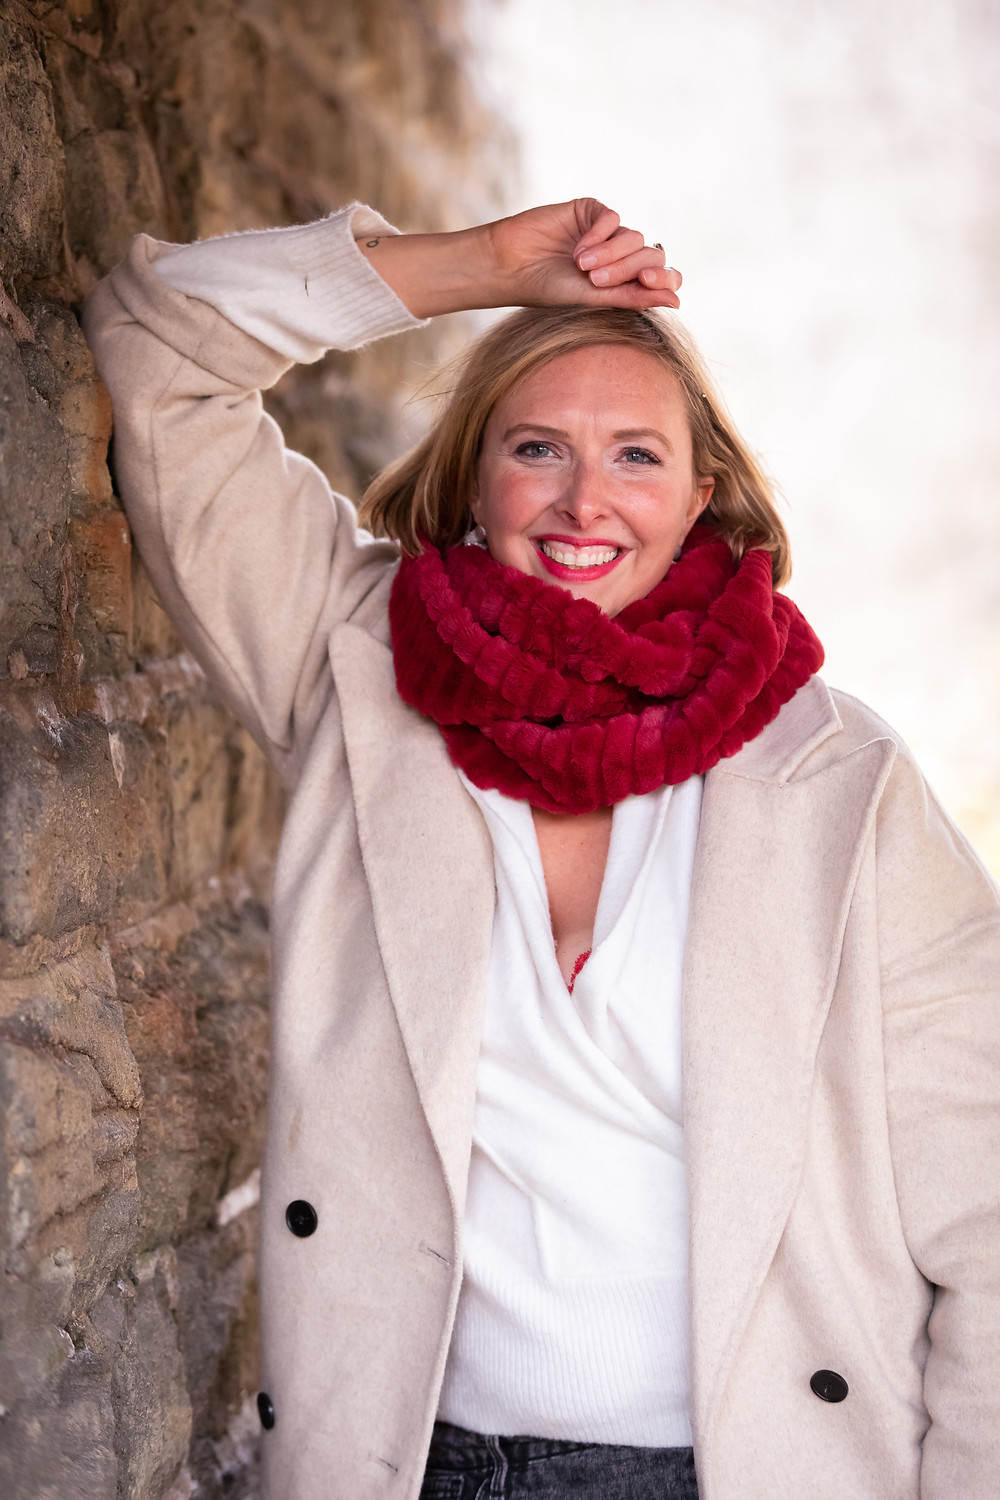 Cincinnati portrait photographer captures image of woman leaning on a wall smiling for a photo.